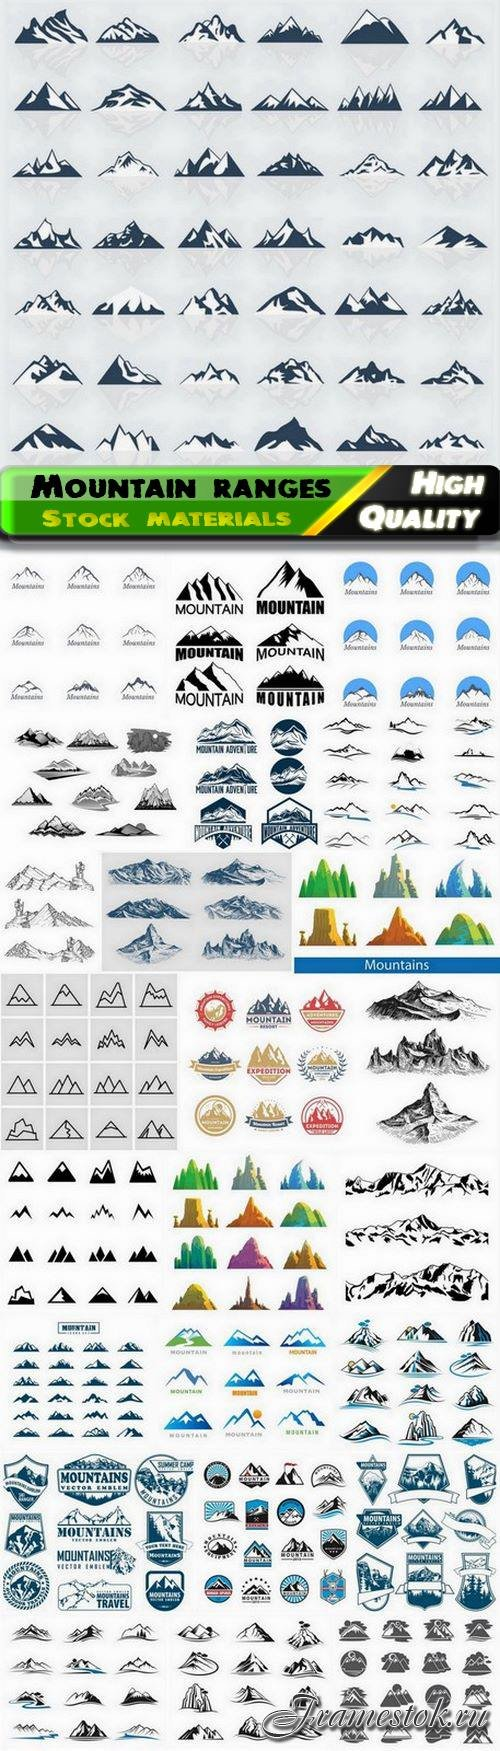 Mountain ranges and rock icon and landscape illustration 25 Eps